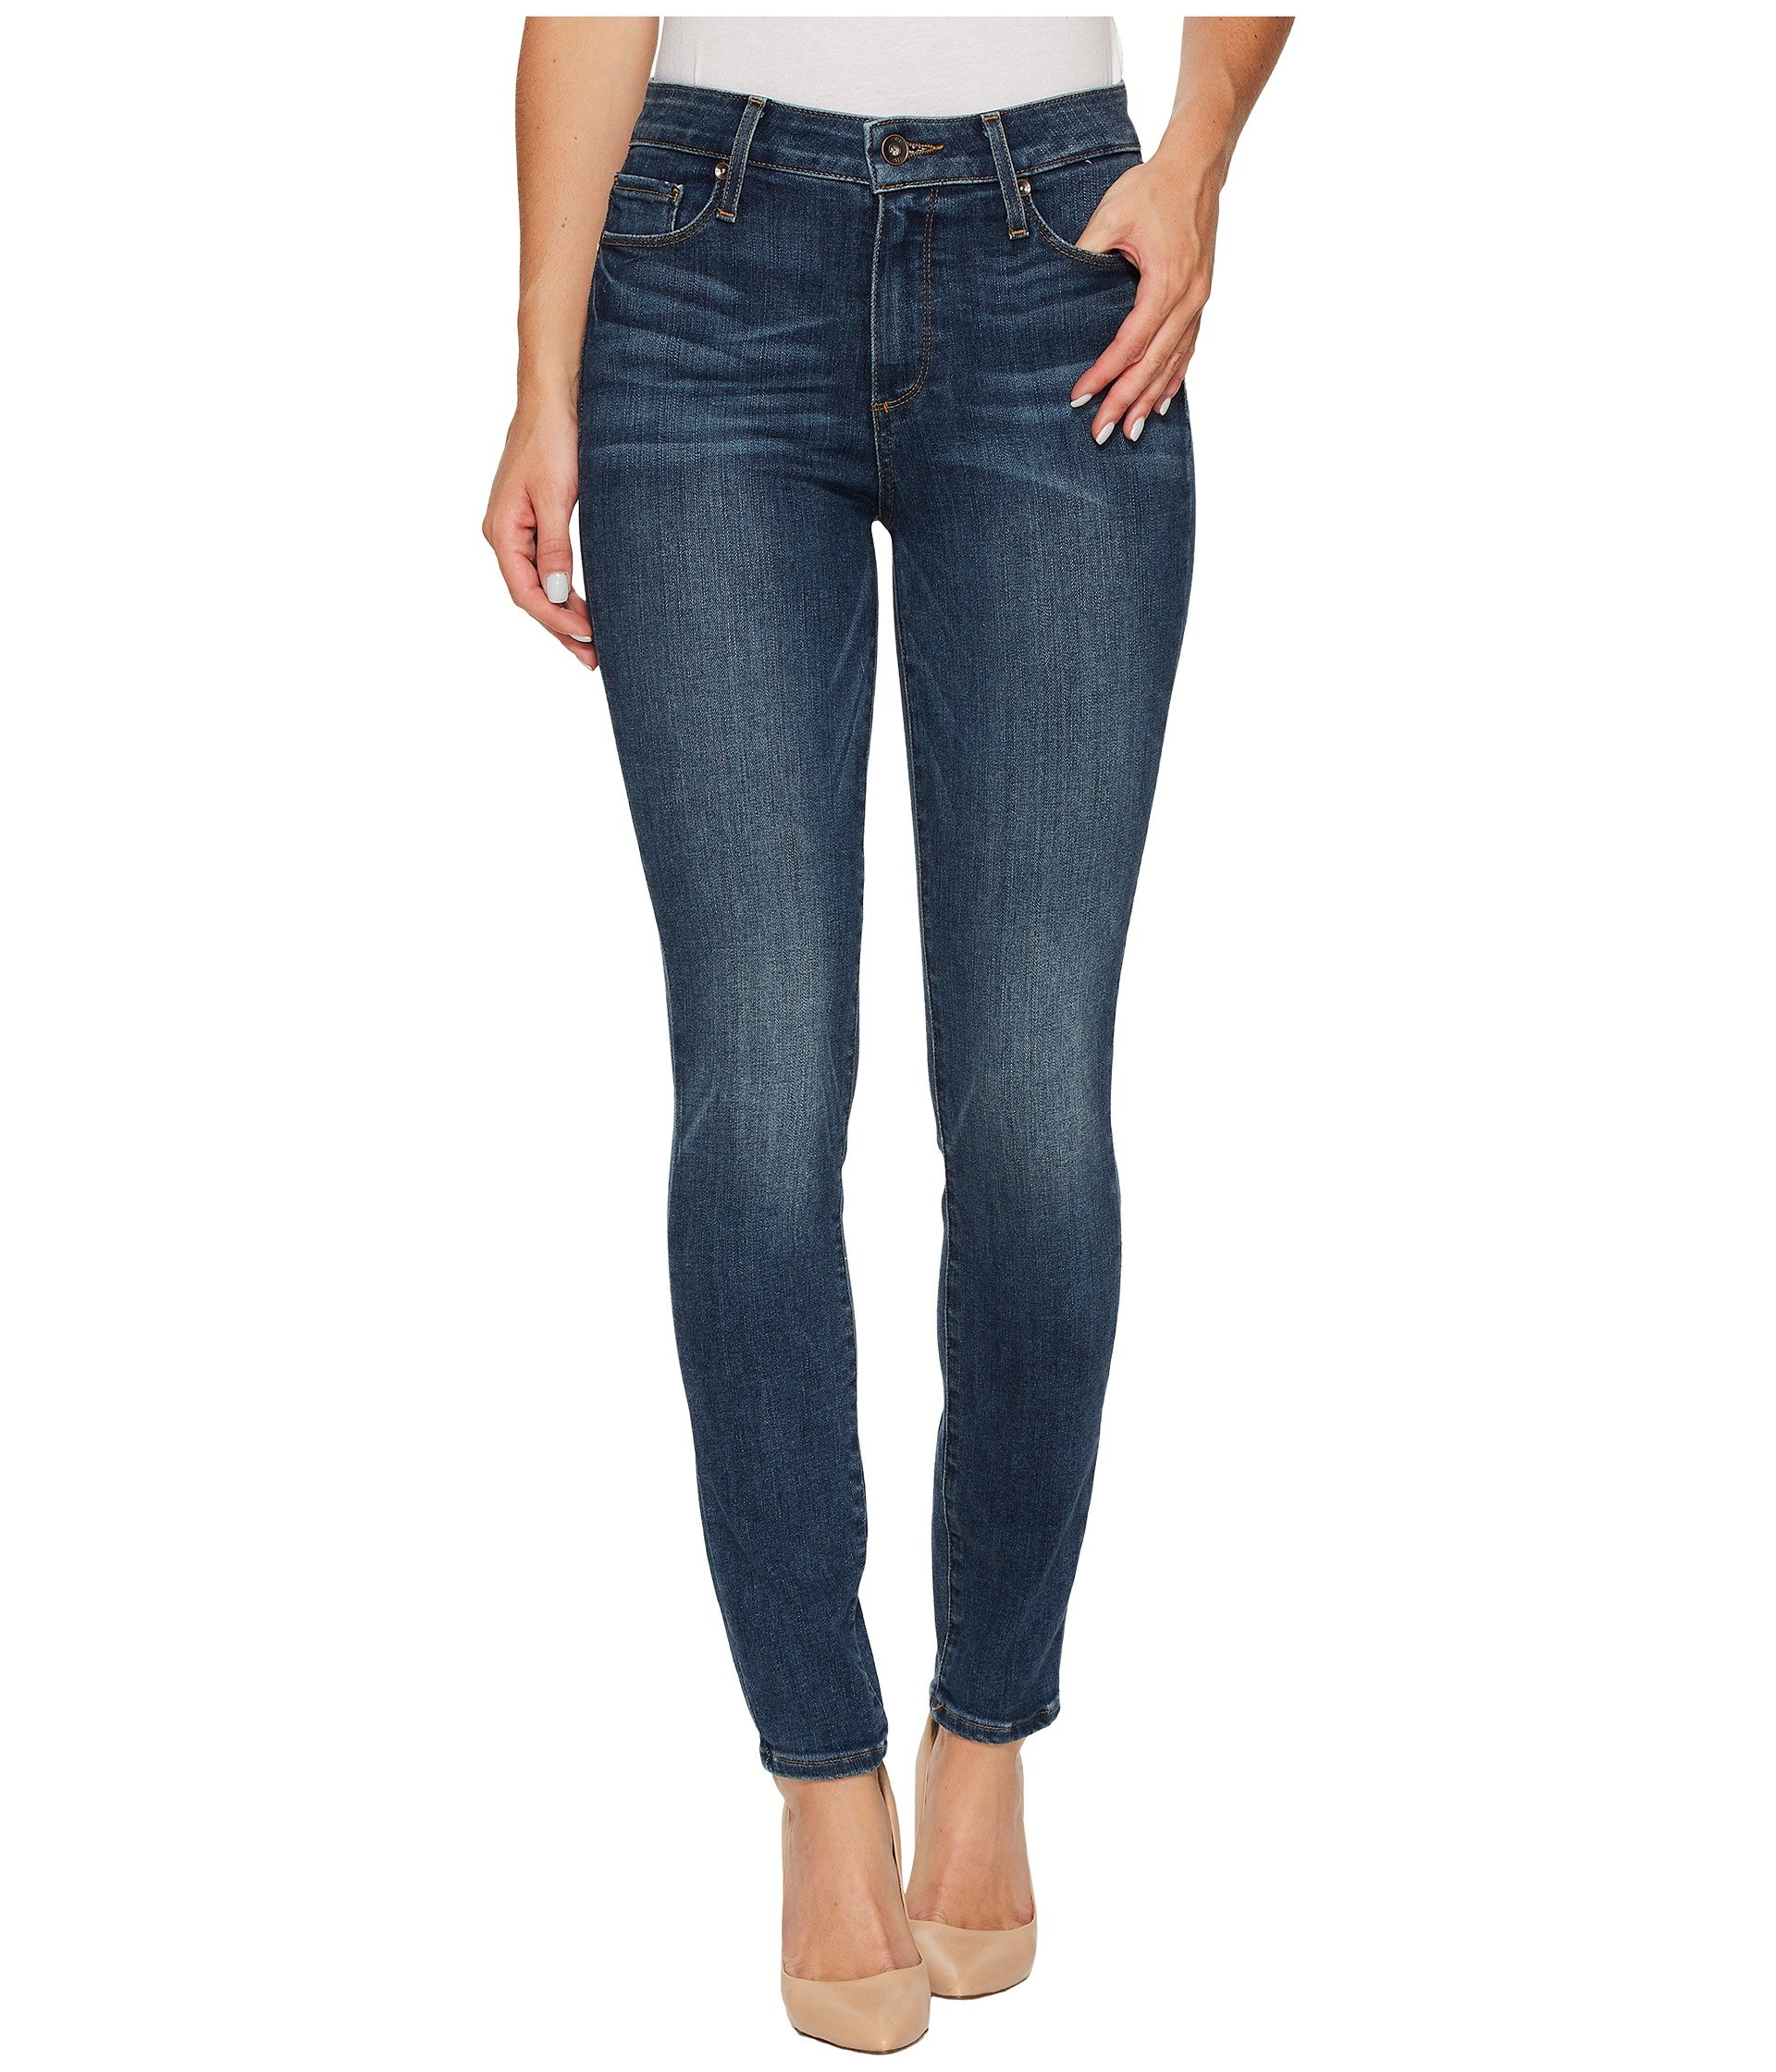 Jean para Mujer Paige Hoxton Ankle in Westminster  + Paige en VeoyCompro.net